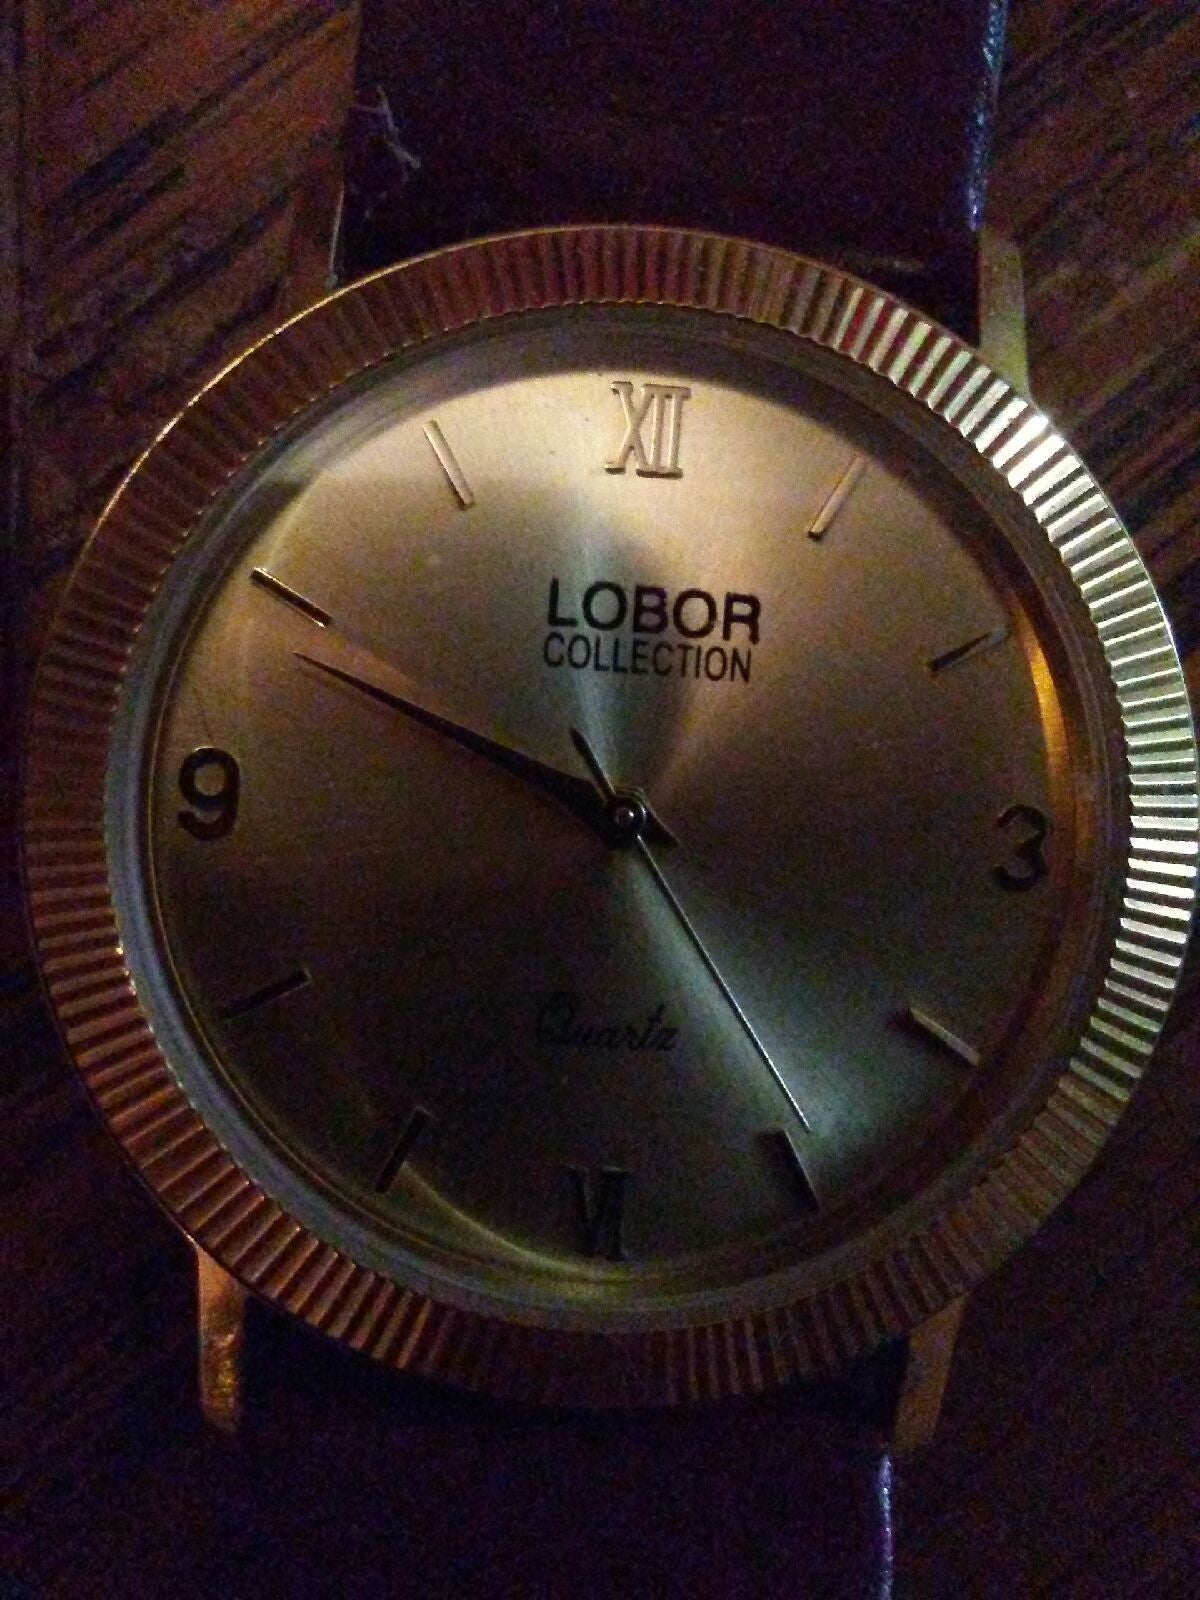 Lobor Collection 23K Plated New